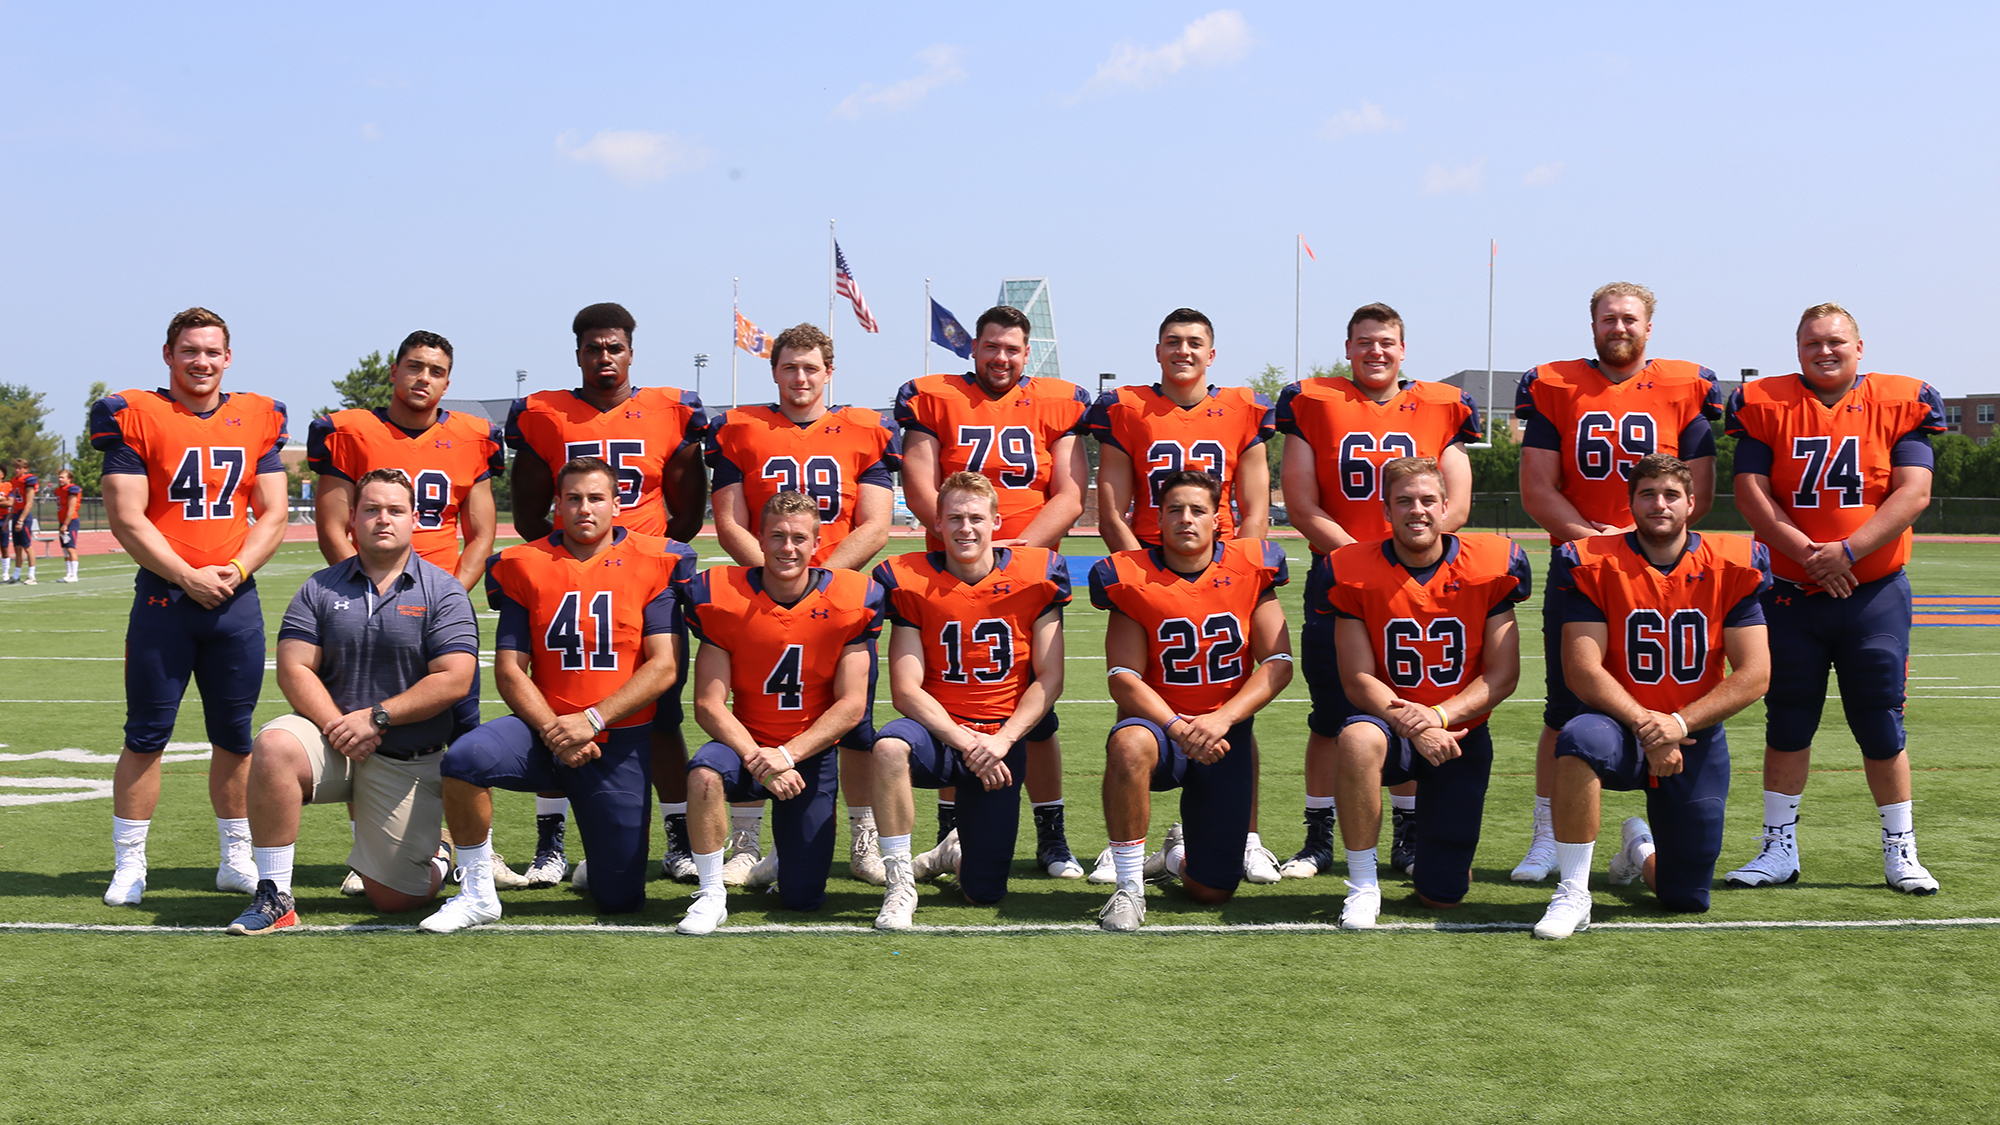 Gettysburg's 16 Seniors were honored before the game (Photo courtesy of David Sinclair, Gettysburg College Athletics)